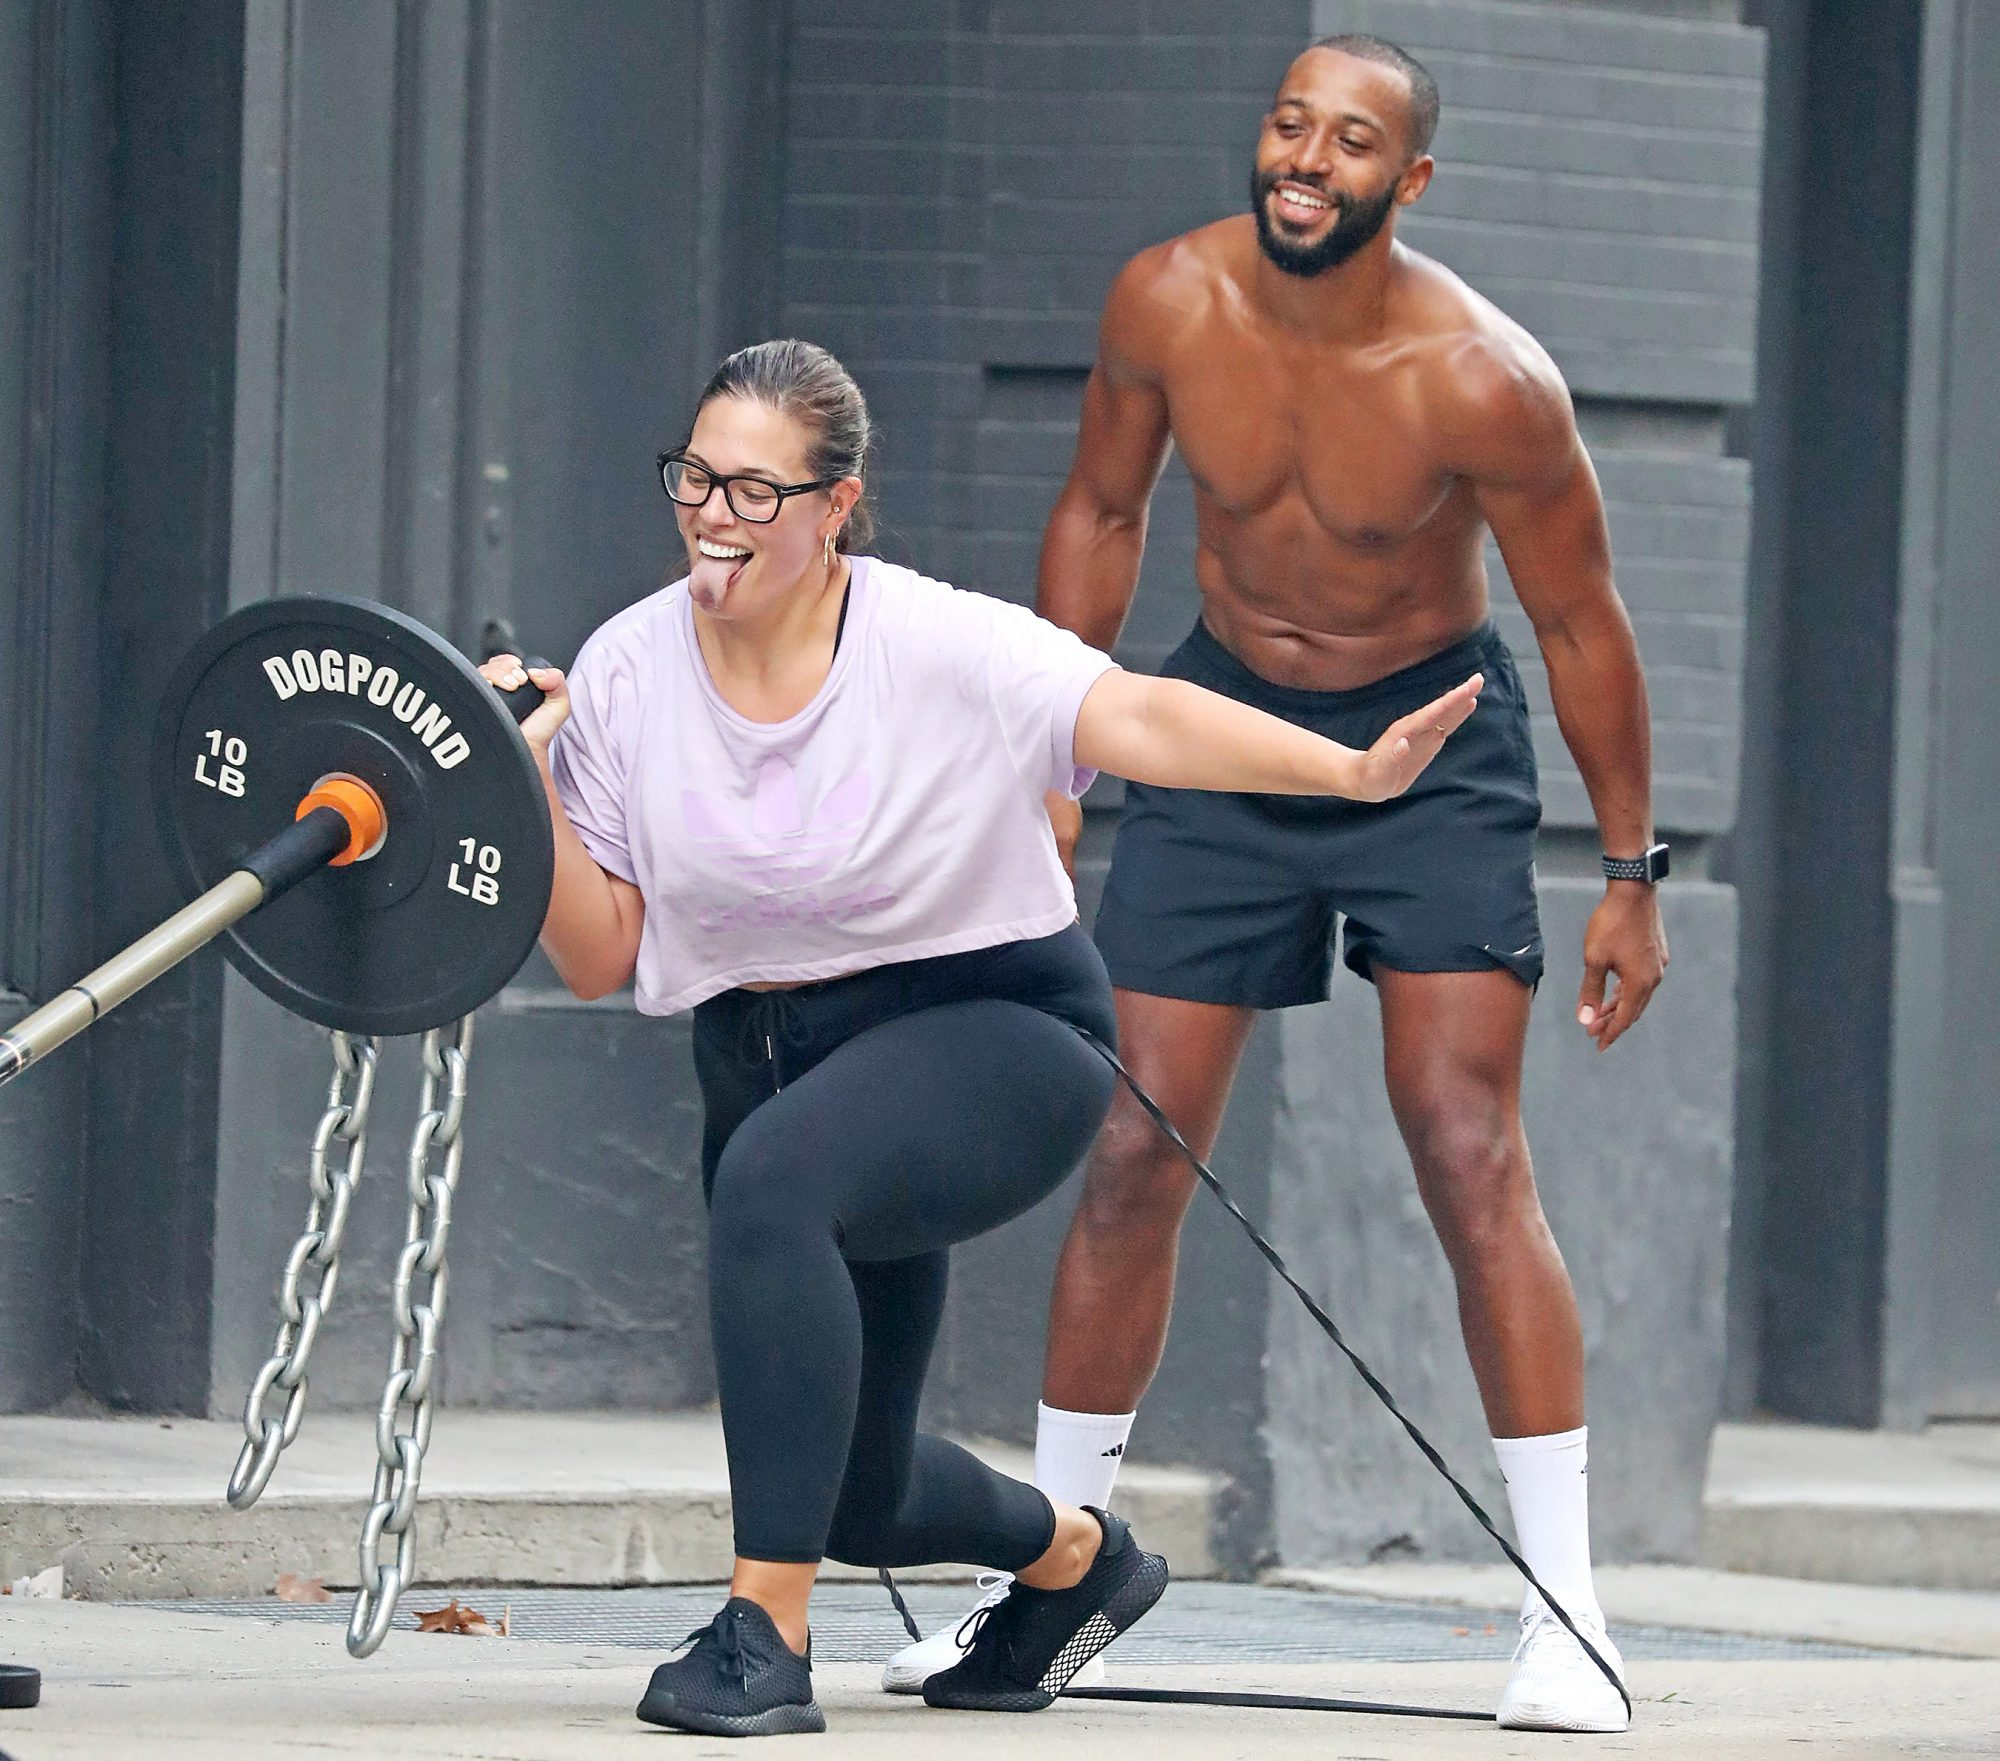 Ashley Graham and husband Justin Ervin do a workout session at Dogpound Gym, NYC